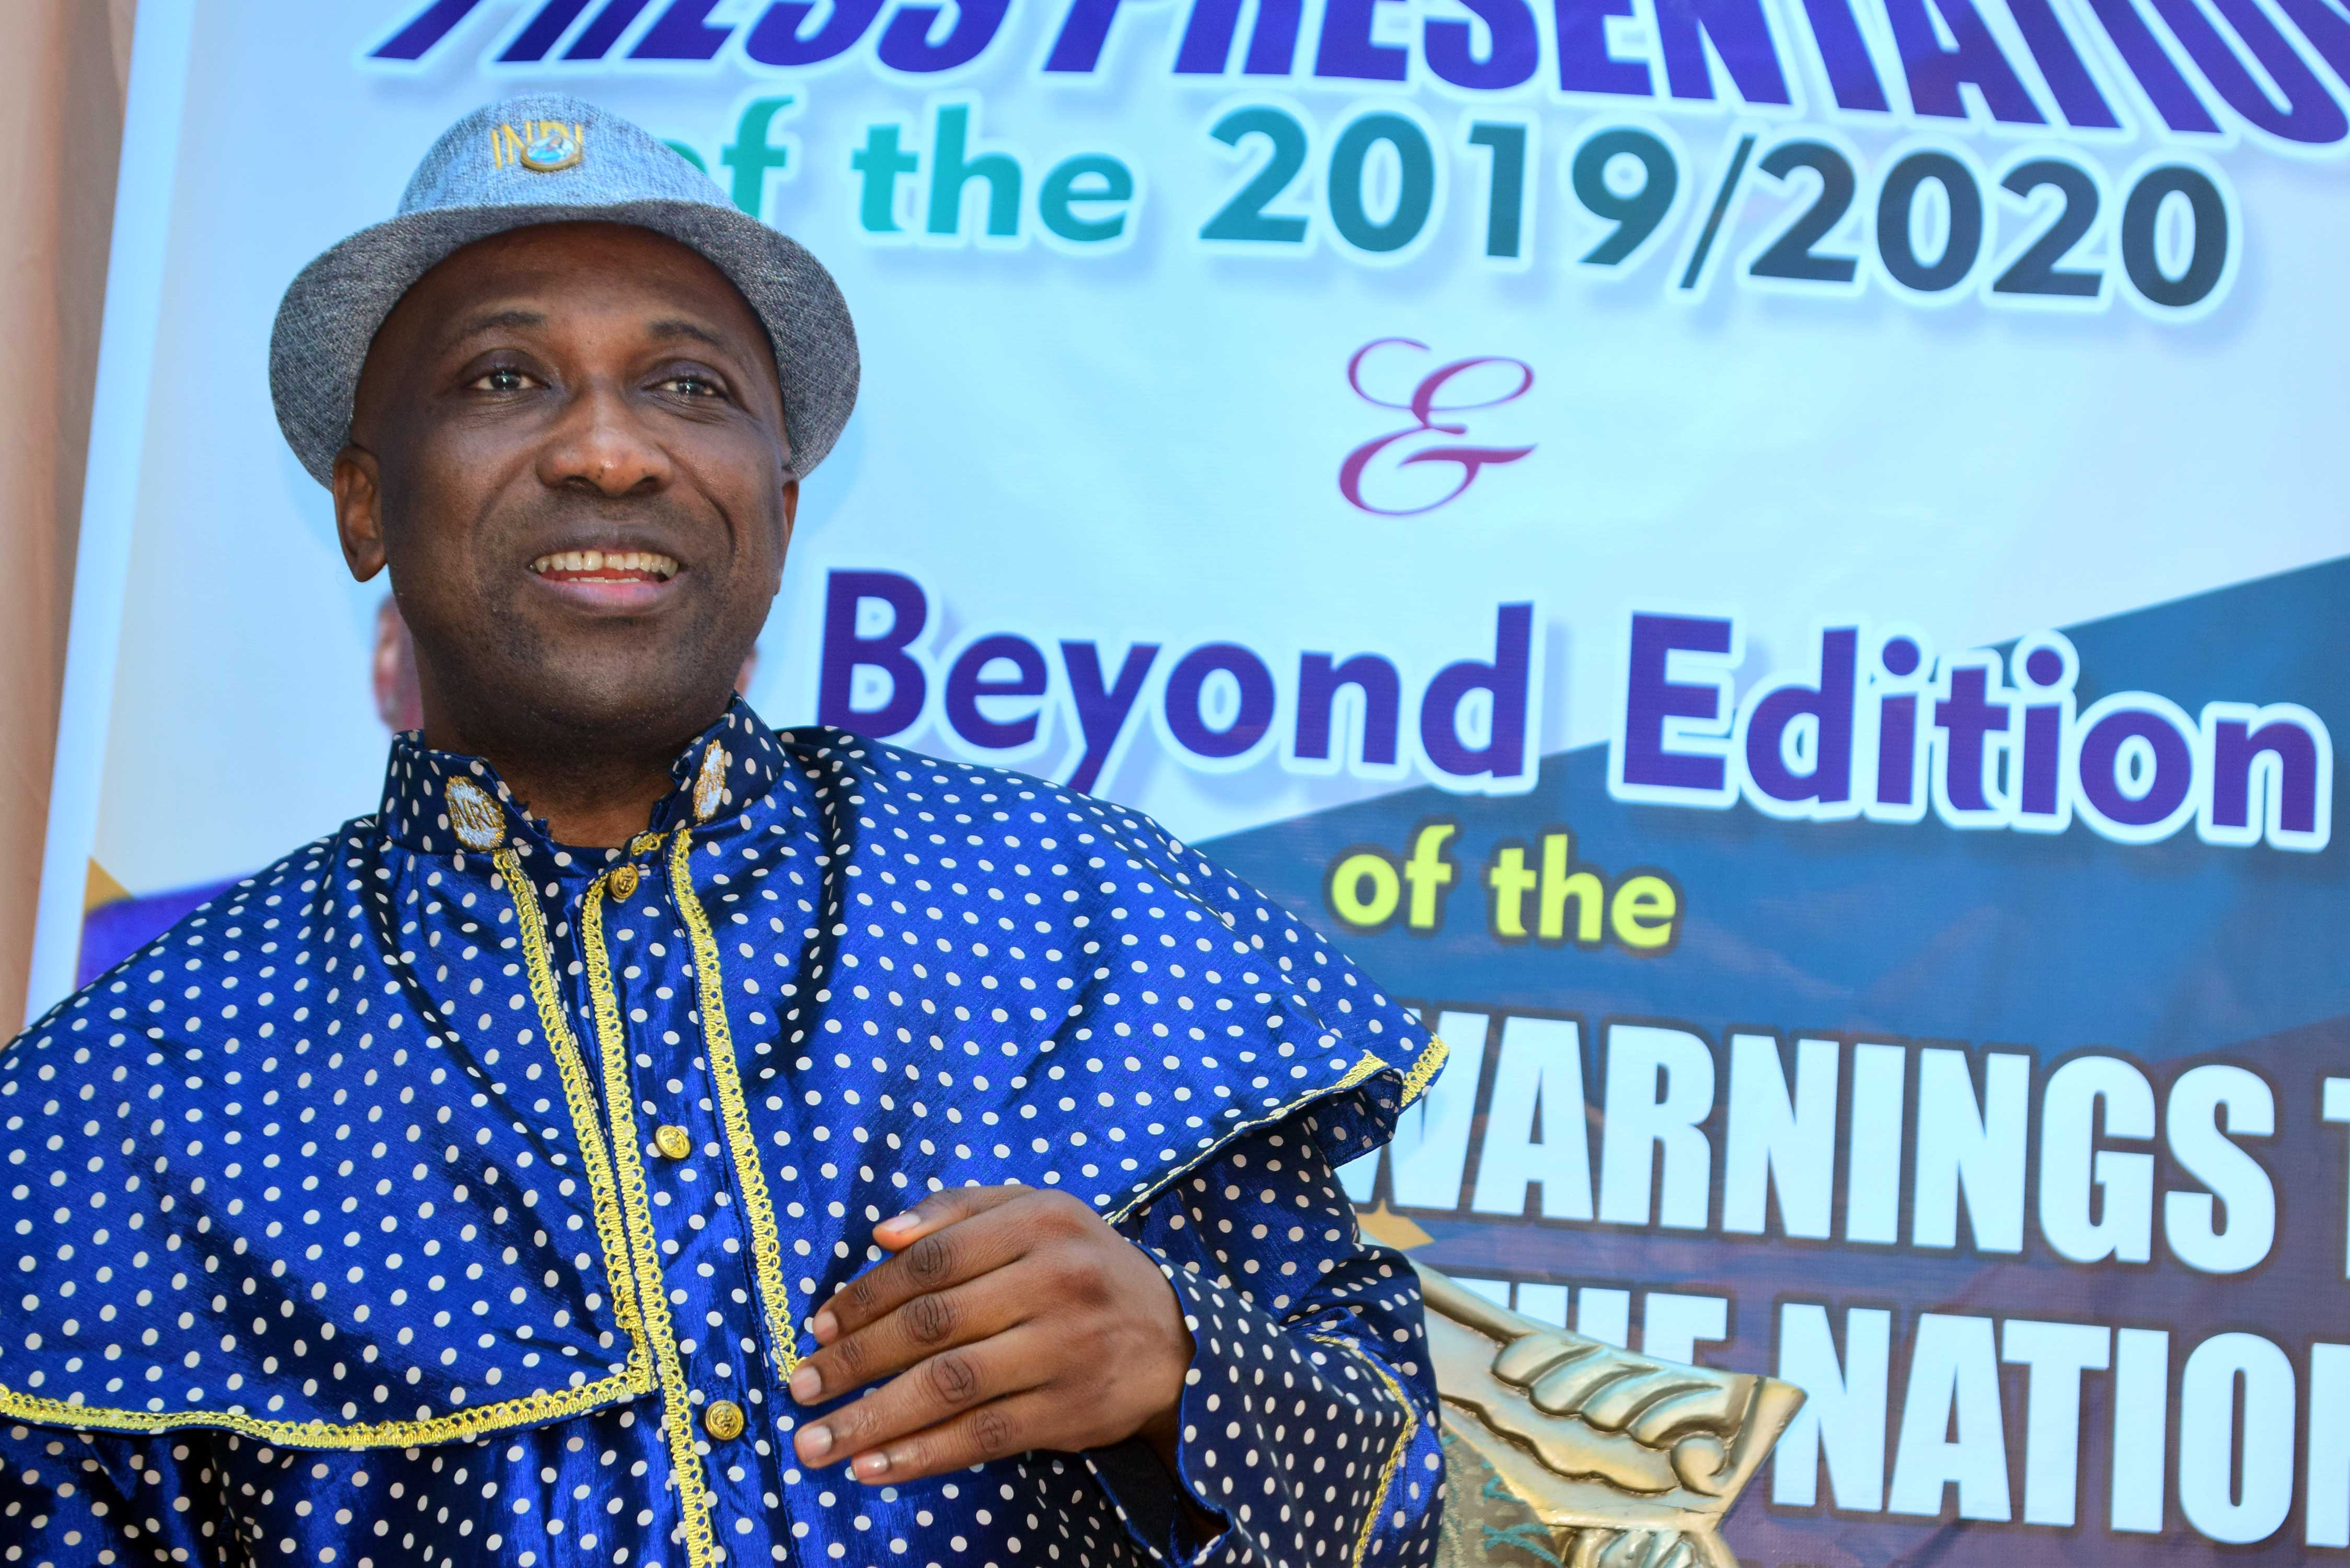 Prophesy is a divine gift from God to man to accurately see into the future. Only few men of God have this special gift from God, and one of them is Primate Elijah Ayodele. The popular man of God has been known for releasing prophecies for several years, and he keeps staying relevant due to the style of his prophecies. Every year, he publishes a book of prophecy titled Warning to the nations, its been running since 1994, also, before the beginning of every year, He releases God's mind about the new year. His prophecies about 2021 has been coming to pass already as some of the fulfilment have been published in the public space, some of them have just come to pass now, and they include Attack On United Nations Building: The man of God warned against an attack on one of the buildings of the united nations in his prophecy. In his words - 'UN will lose a prominent director and we should pray against the killing of their field workers. Also, they must be careful so that the UN building will not be attacked in Africa'. As he said it, a United nations building was attacked in Somalia, and it killed three people. - Death Of Footballer : Primate Ayodele warned that we should pray so we wont experience the death of a football player in the world. Just some hours ago, news broke out that an Italian midfielder, Daniel Guerini died after he was involved in an accident In his words 'Let us pray not to lose a football player and a referee in Africa and the world at large' - Explosions: There was an explosion in Abuja earlier today that caused panic for the residents. Primate Ayodele had warned that 2021 will be defined by explosions, bomb blasts, bomb scare, etc. this is just a fulfilment of one of the words he said. In his words 'Explosions, Bomb blast and bomb scare, Fire outbreaks, Accidents, imbalance in economic equations, fighting and wars and epidemics will be the major characteristics of the year 2021.'